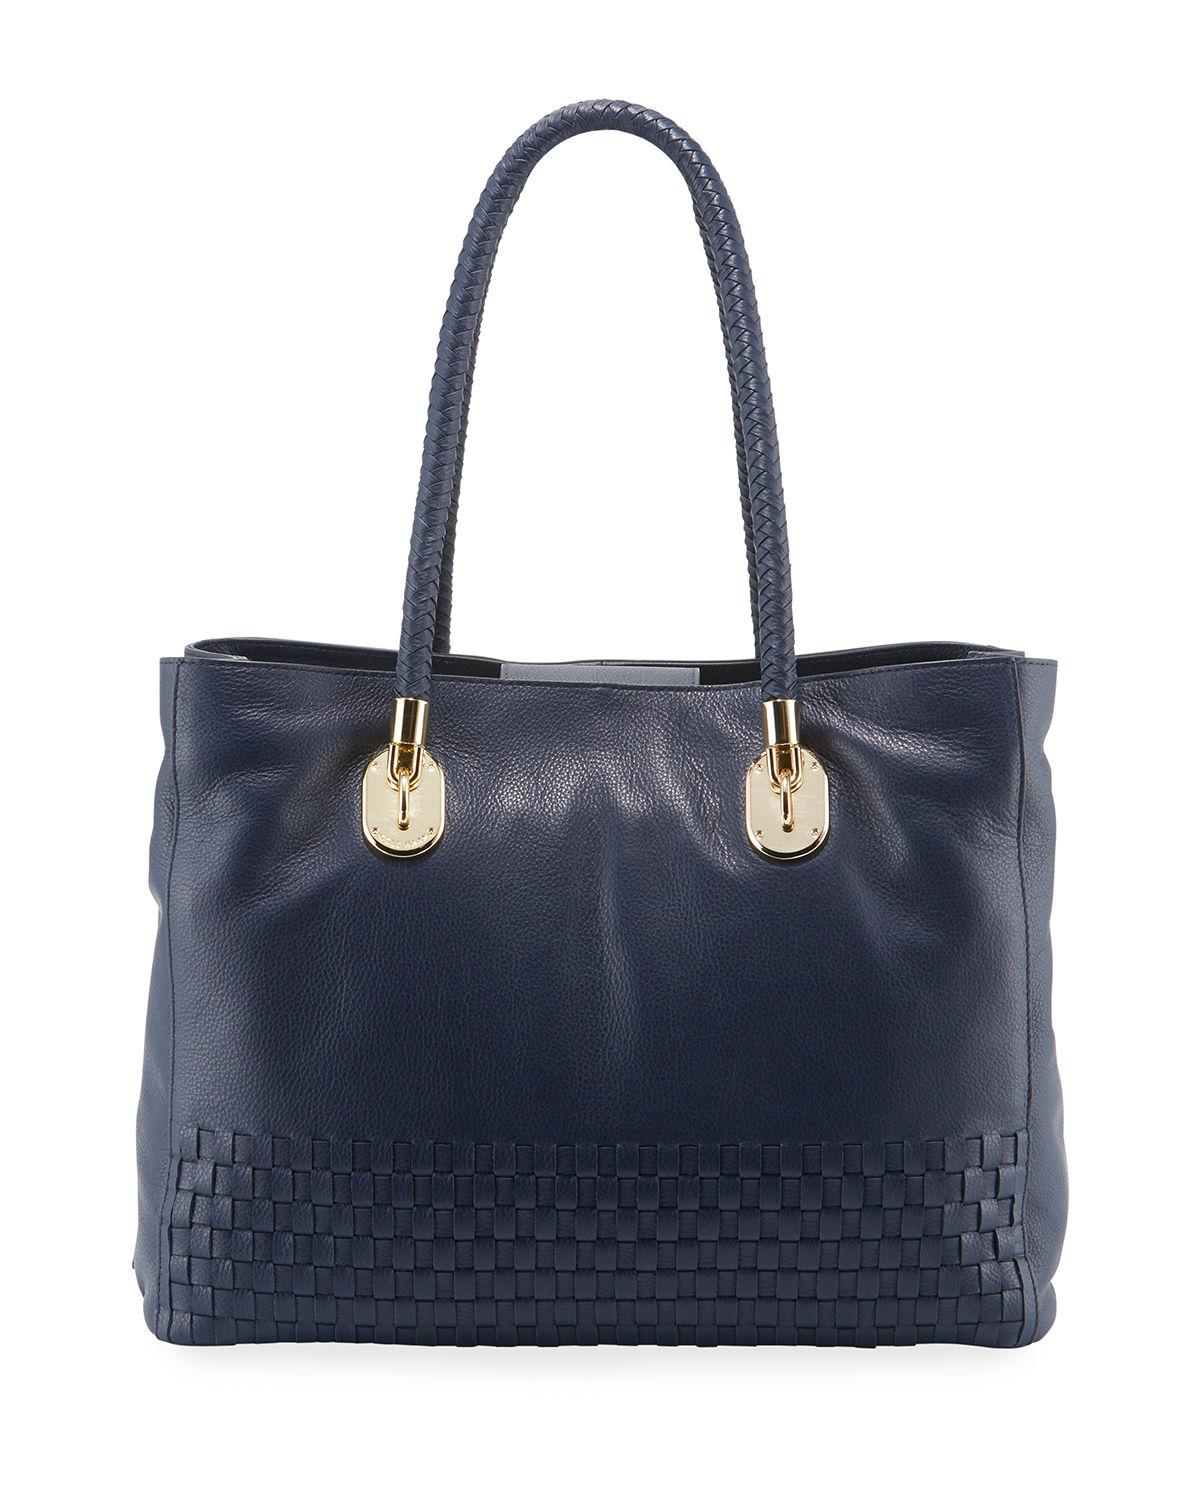 c6509a2c754 Lyst - Cole Haan Benson Large Woven Tote Bag in Blue